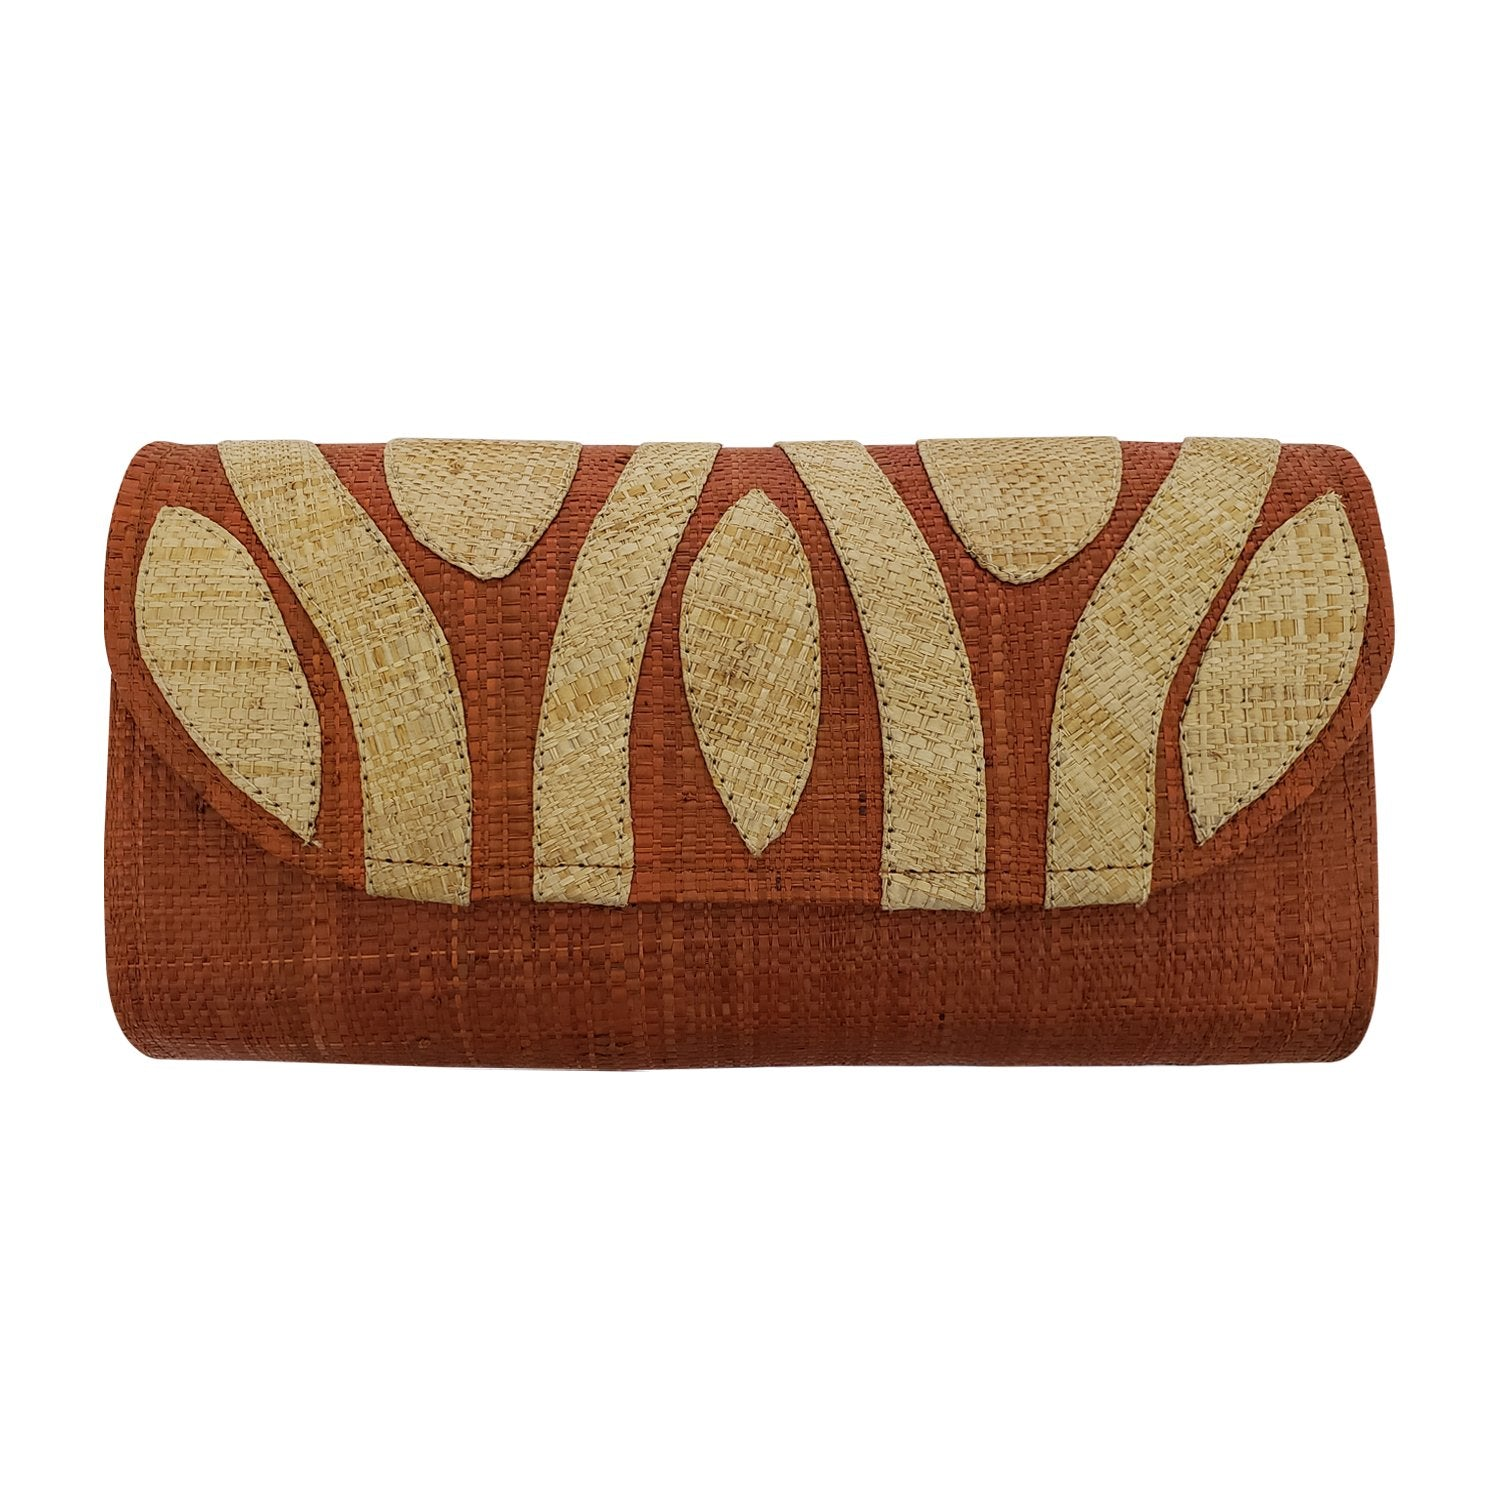 Authentic Handwoven Burnt Orange Madagascar Raffia Clutch with Natural Accents